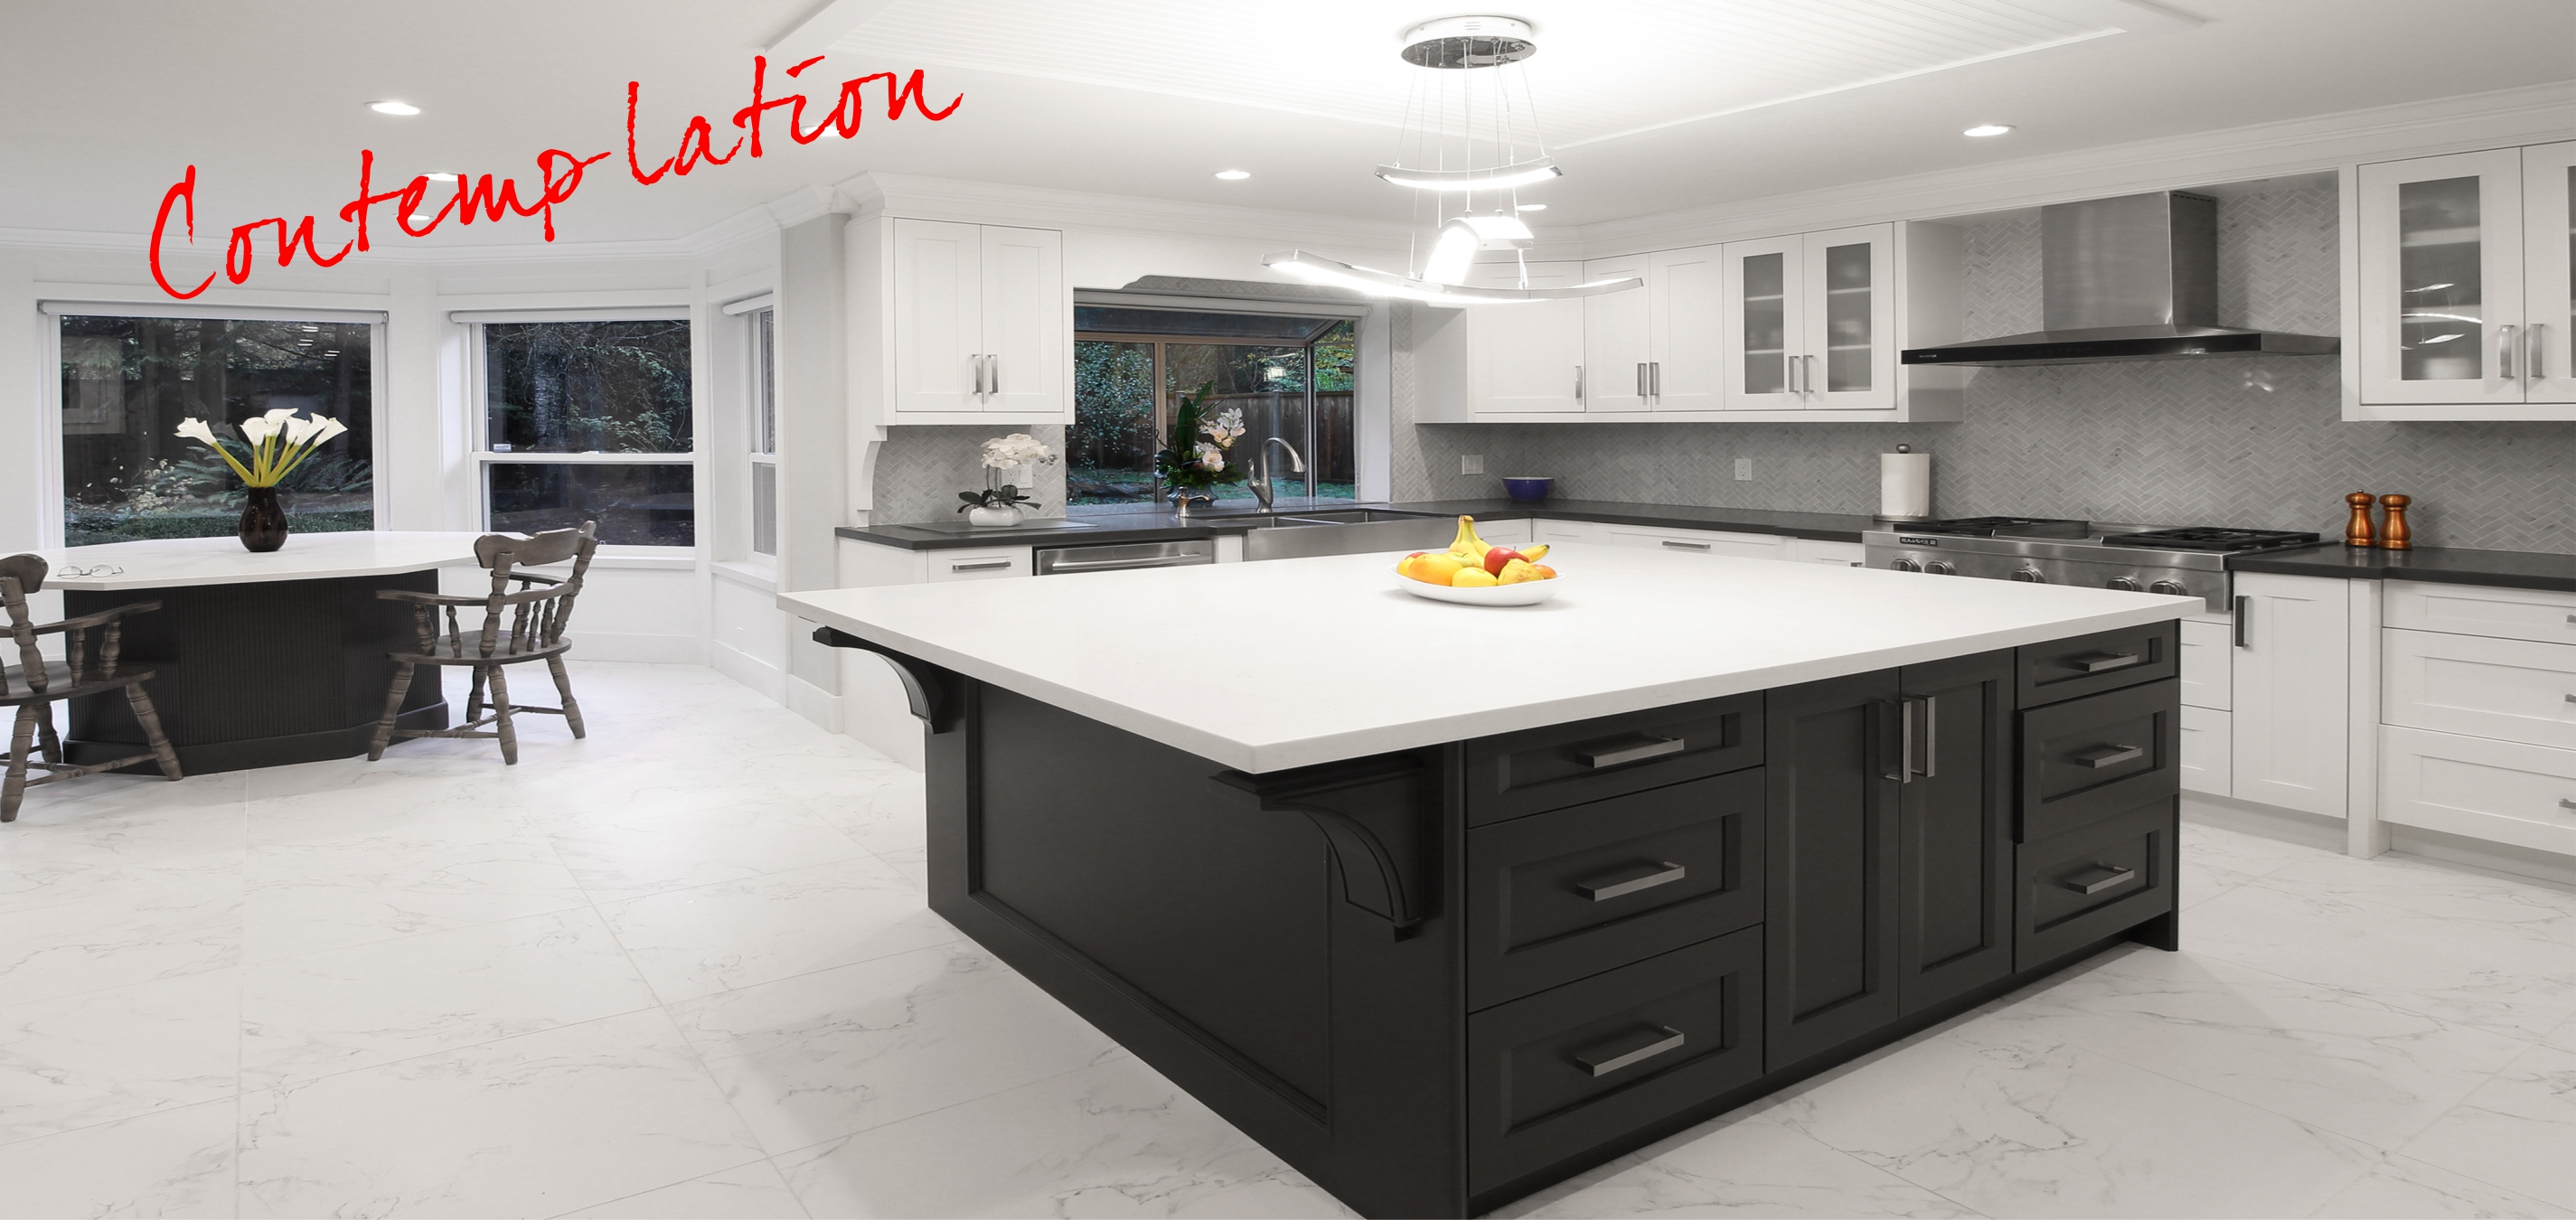 Contemp lation ultimate kitchens magazine Ultimate kitchens